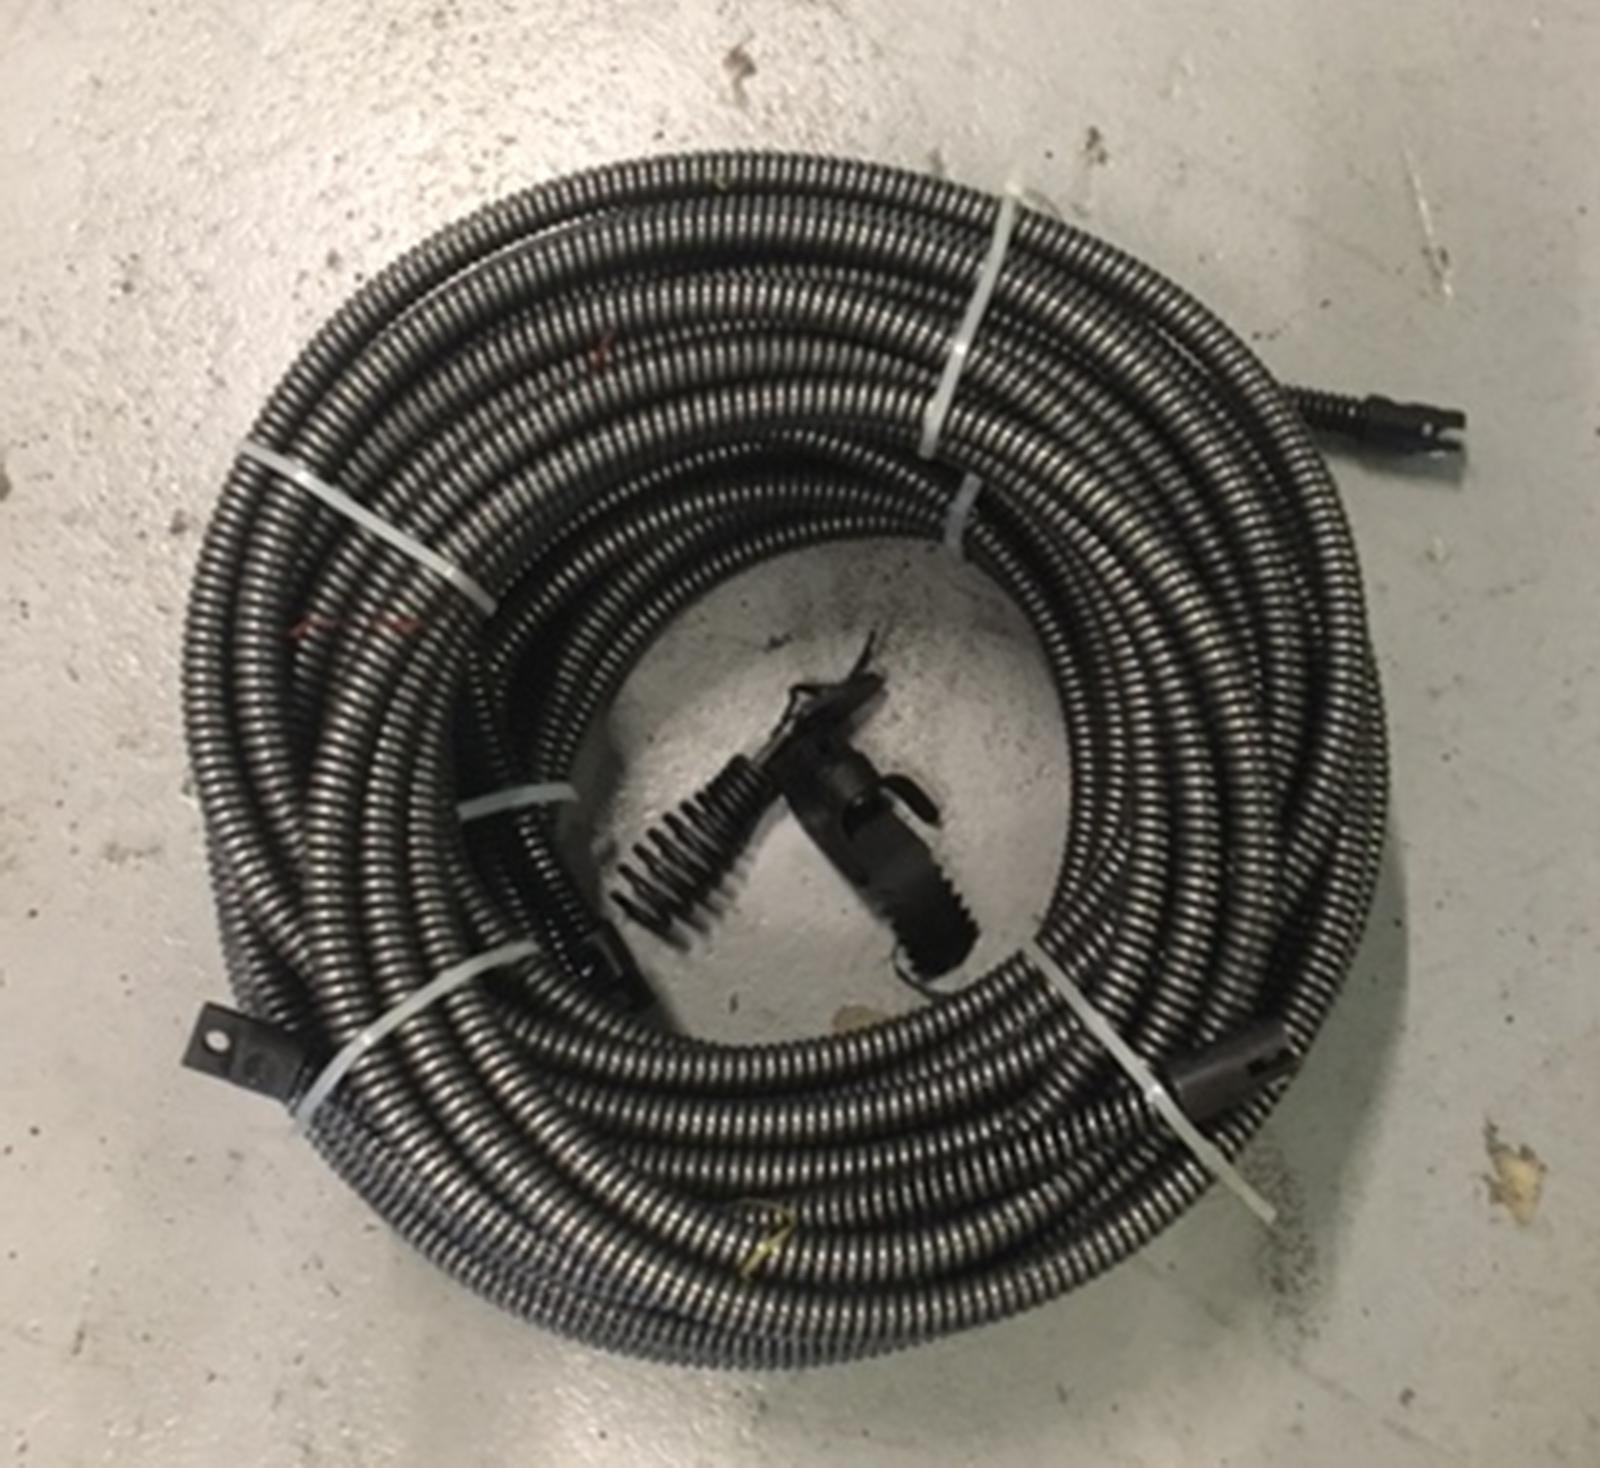 50' + 50' = 100' Drain Auger Cable Replacement Cleaner Snake Clog Pipe Sewer by VKRP Enterprises